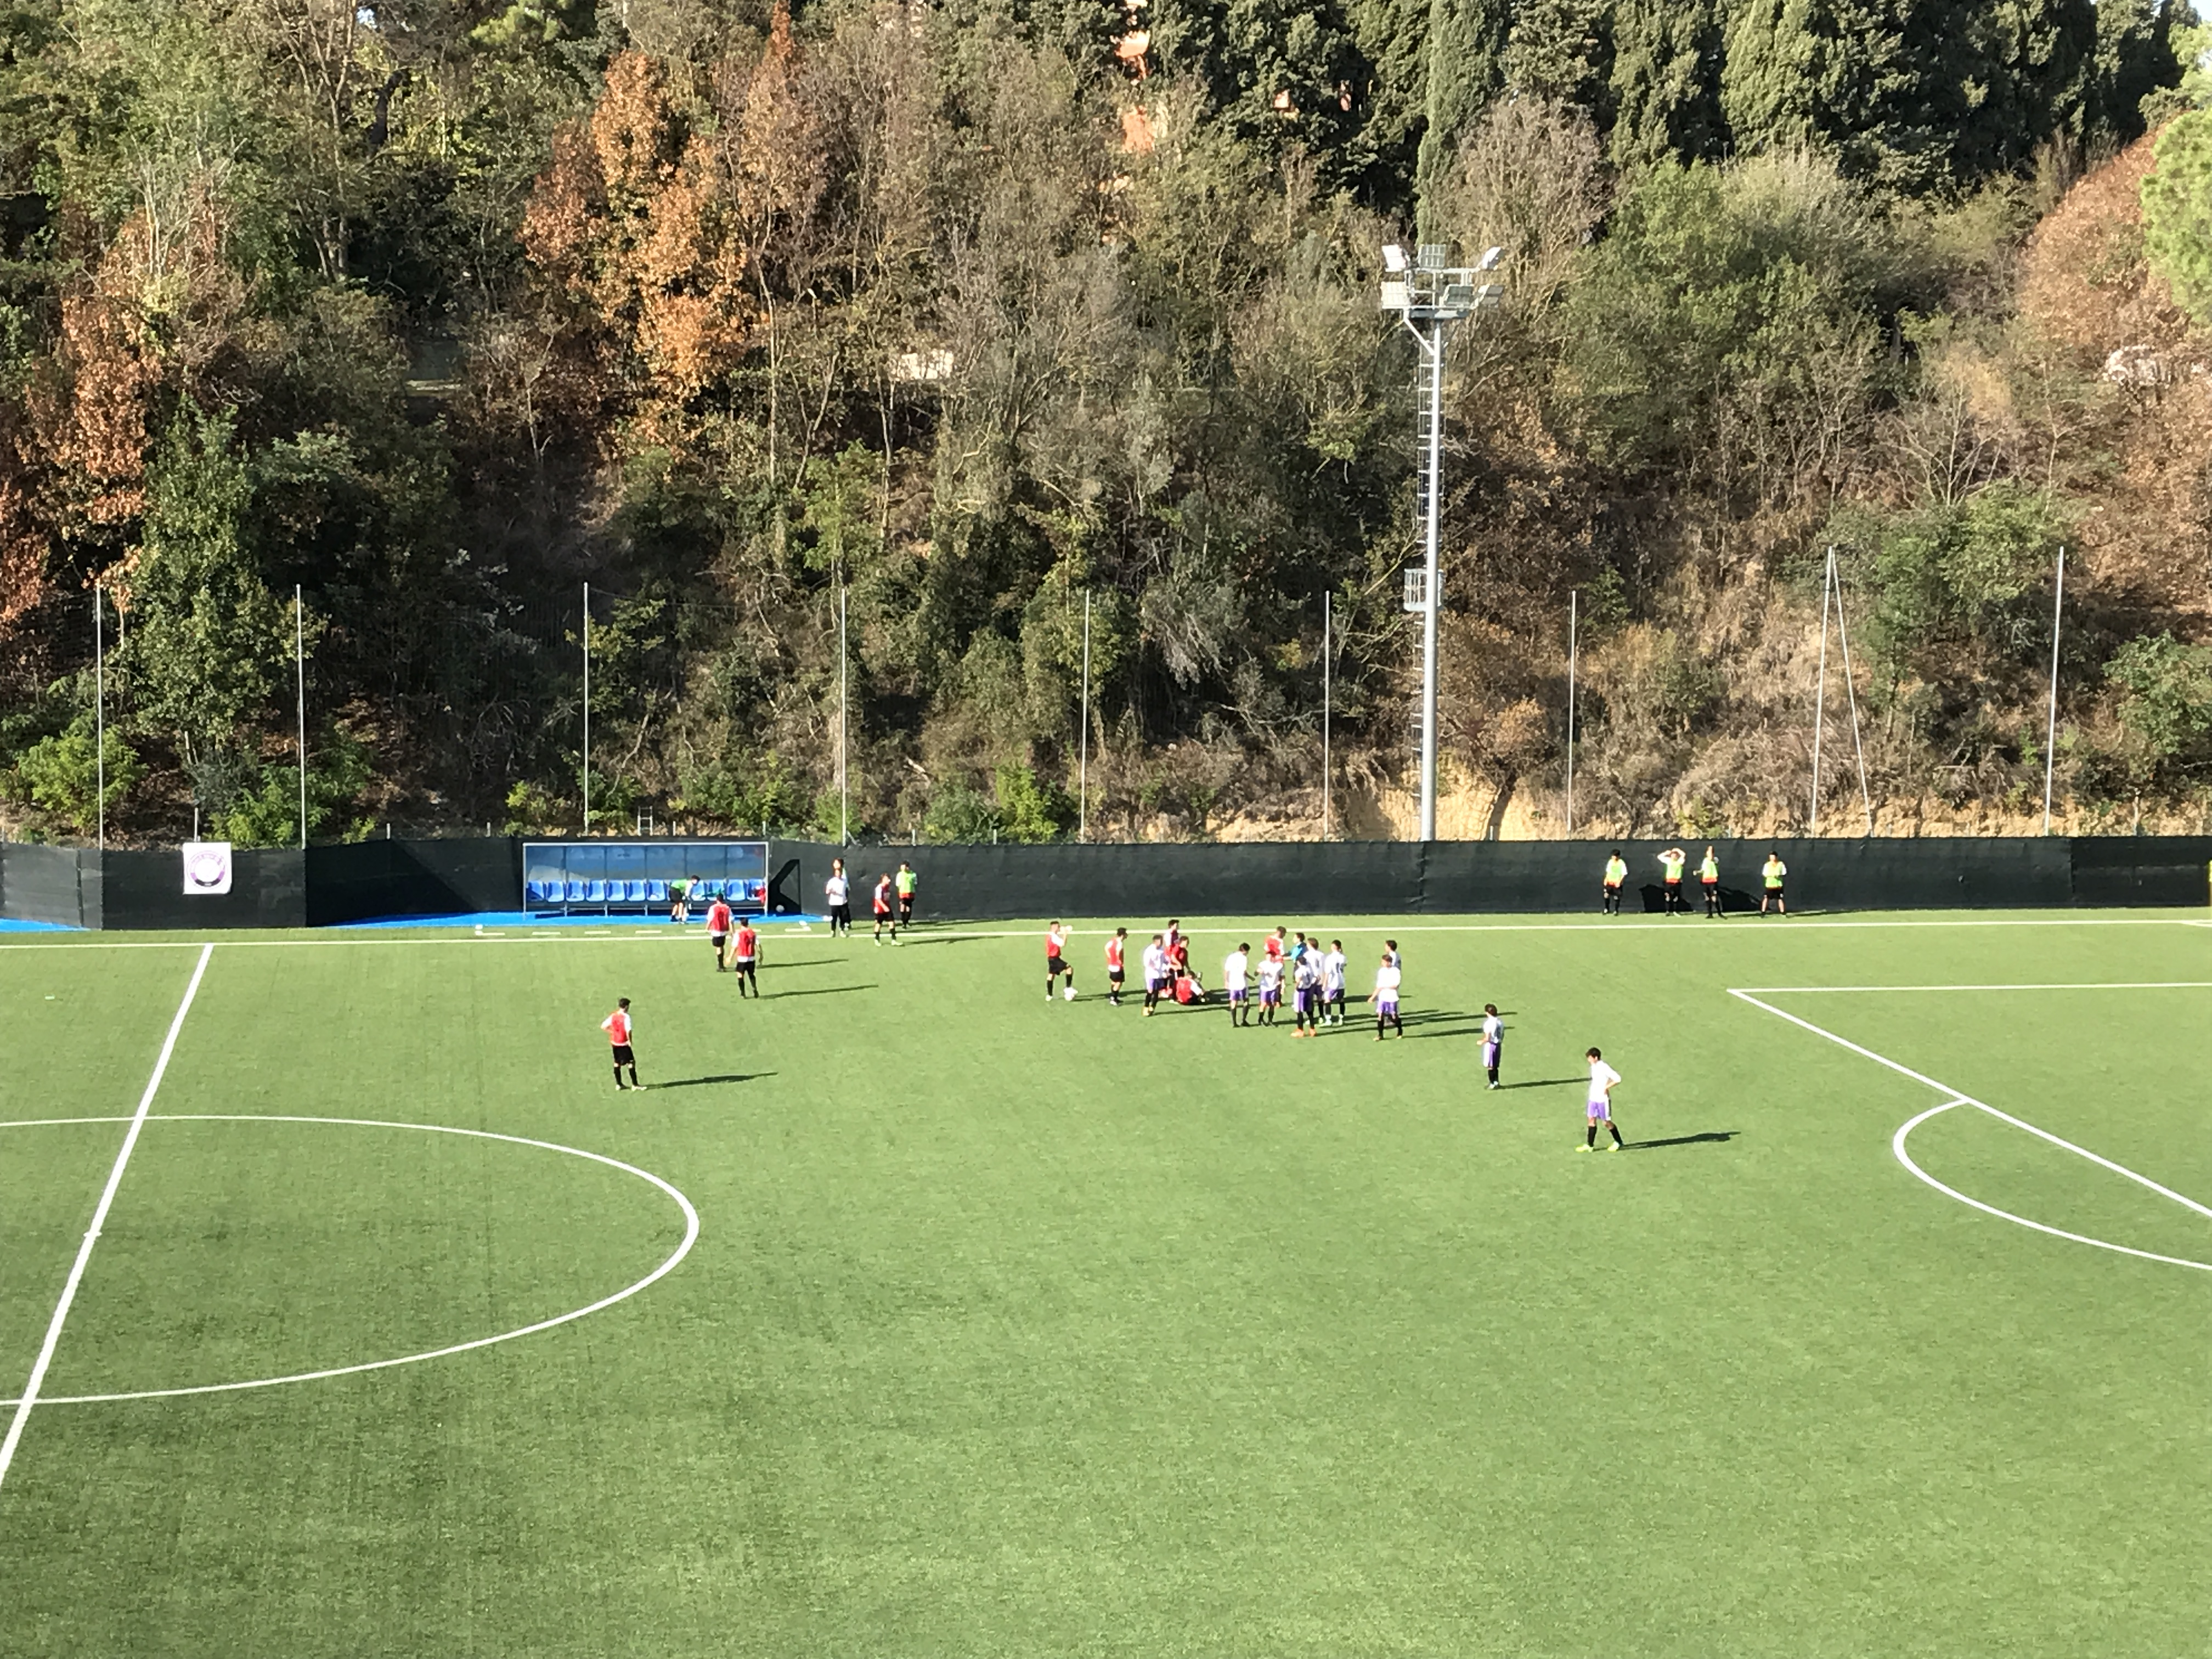 Juniores Elite | Boreale Don Orione – Colleferro 1-1, le pagelle